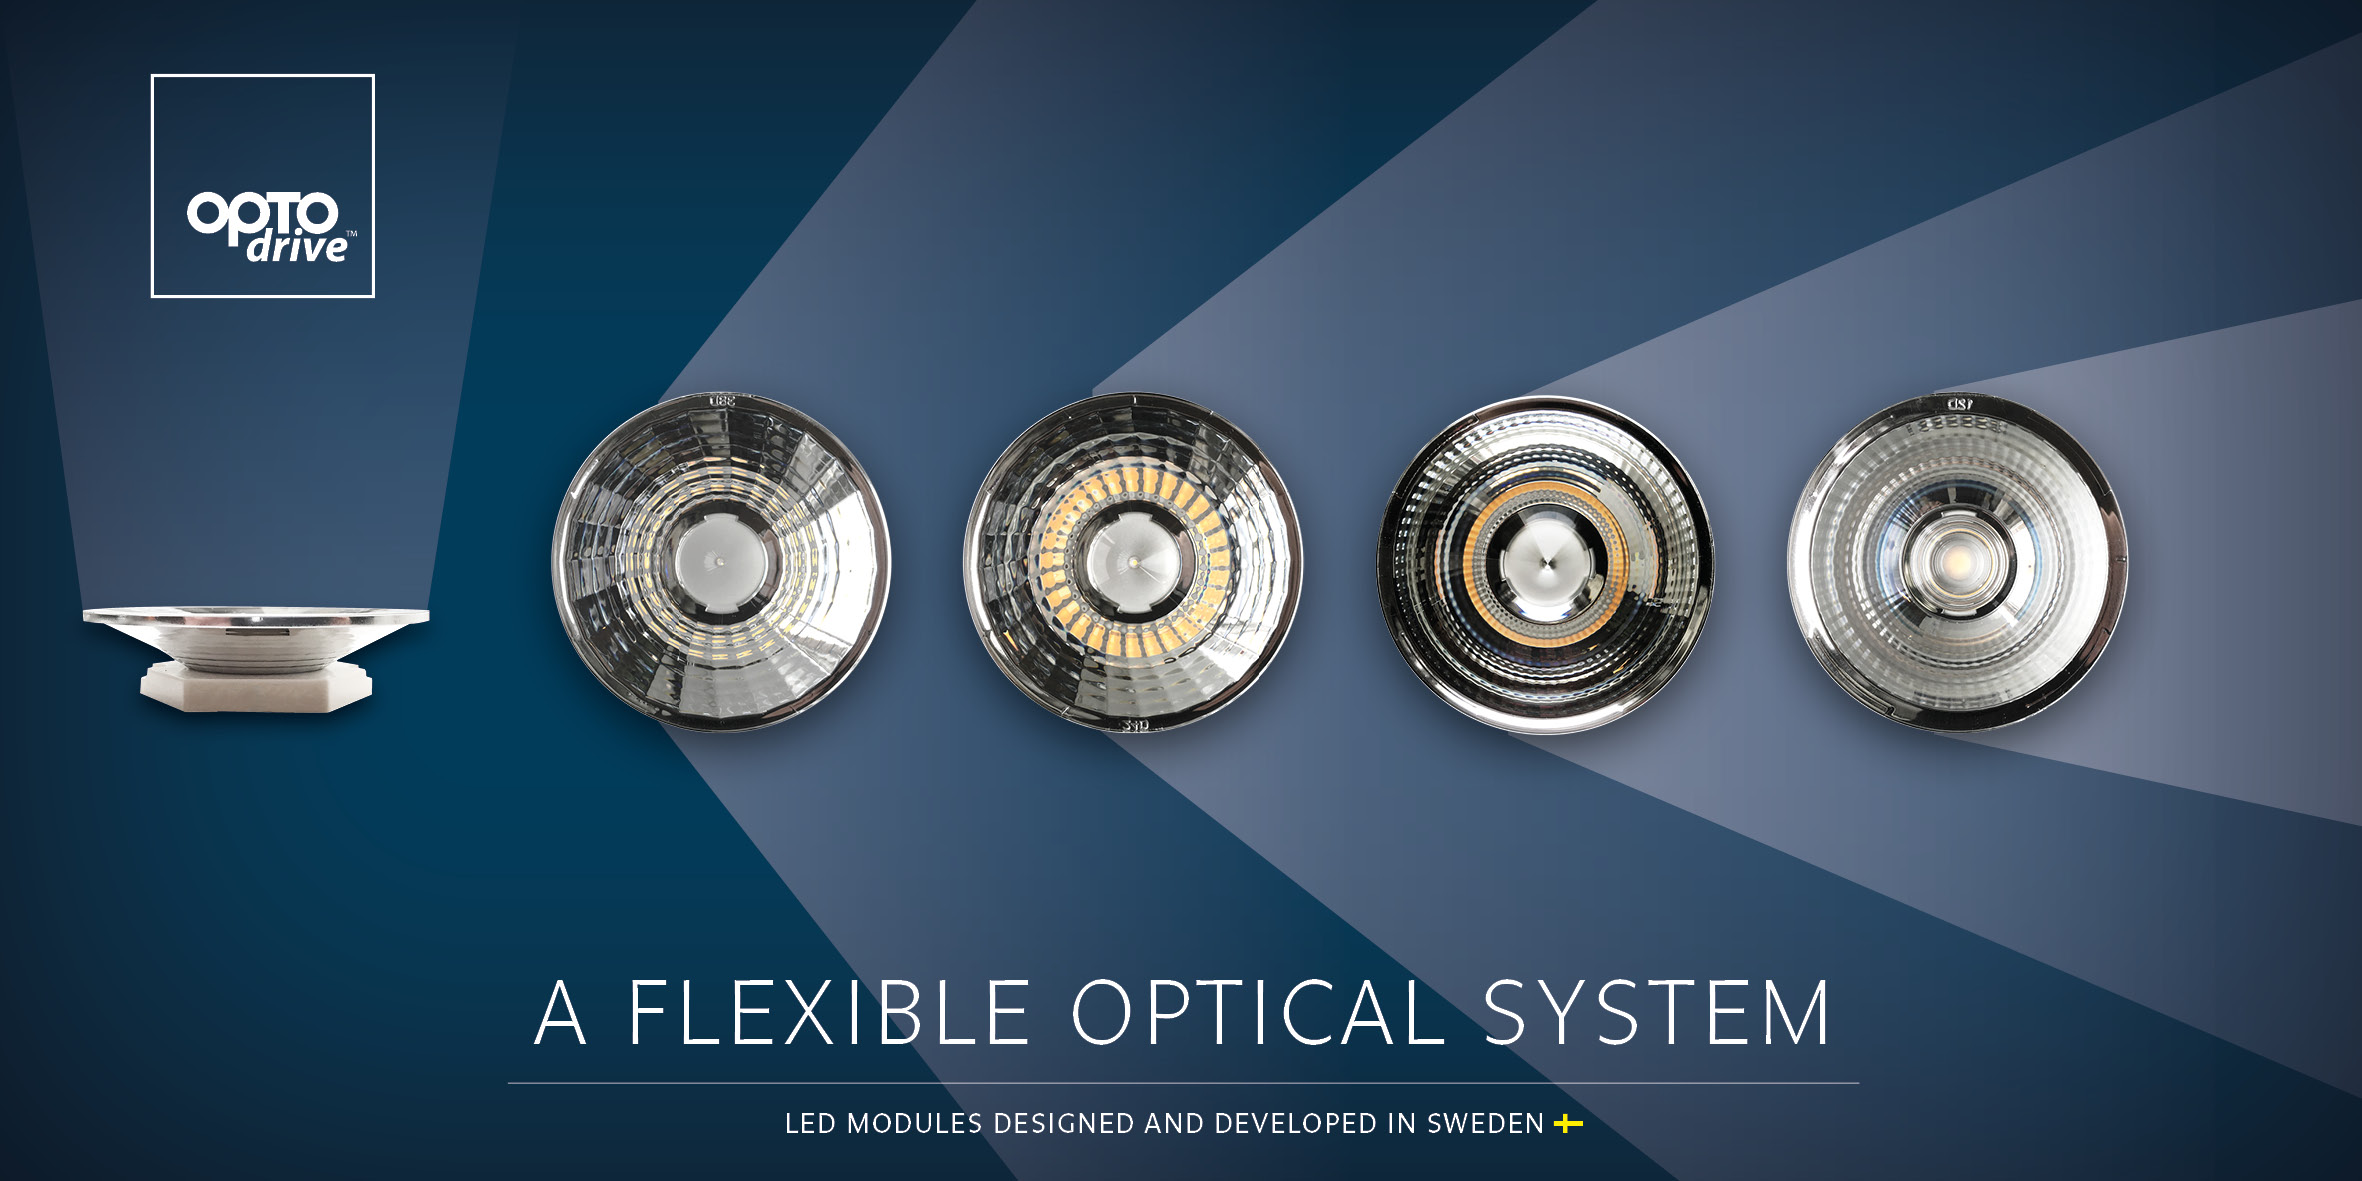 A flexible optical system